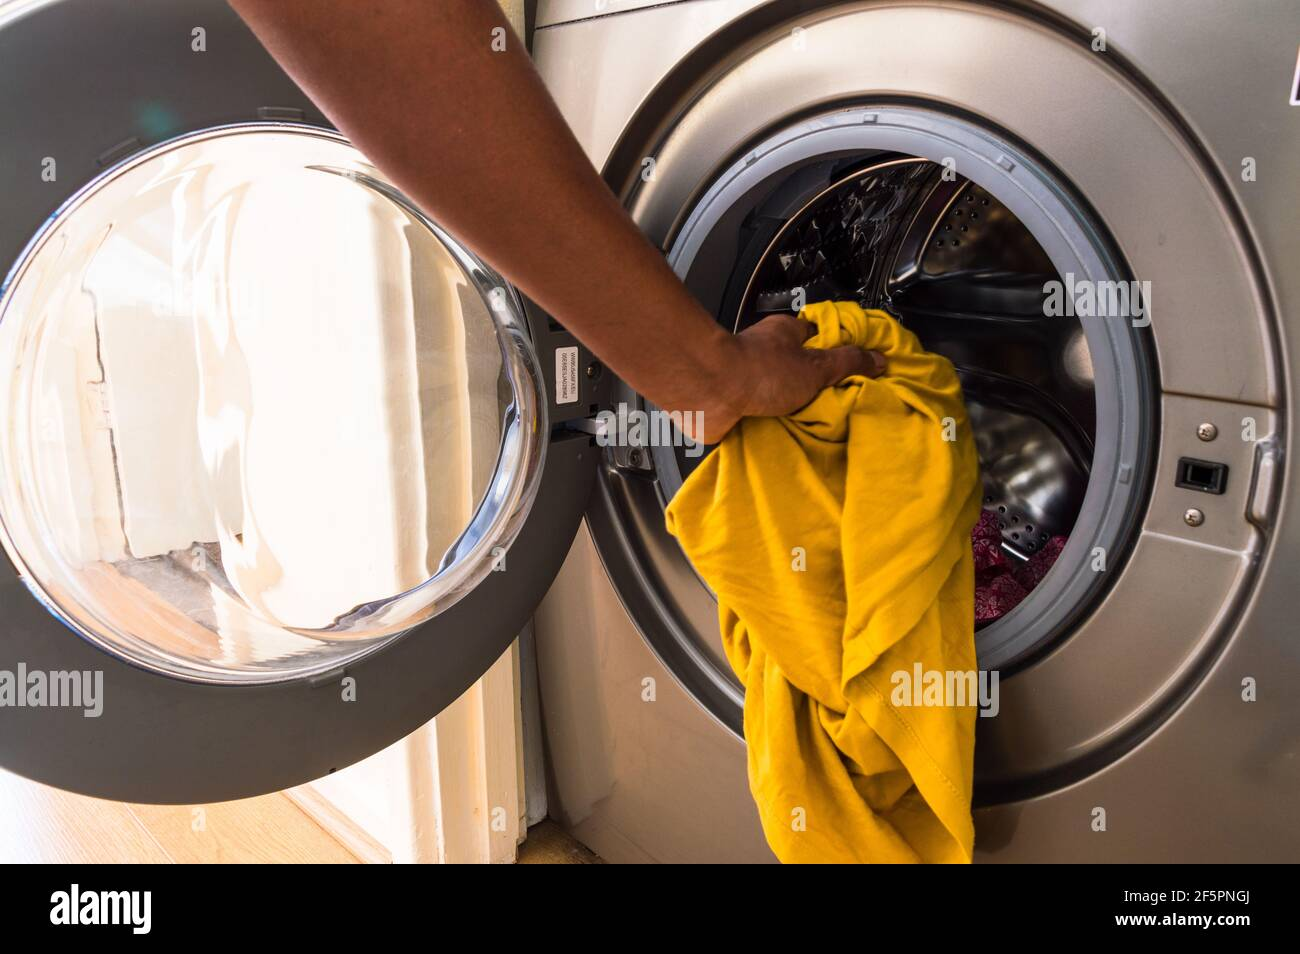 Adult middle aged Asian man loading washing machine with soiled clothes Stock Photo